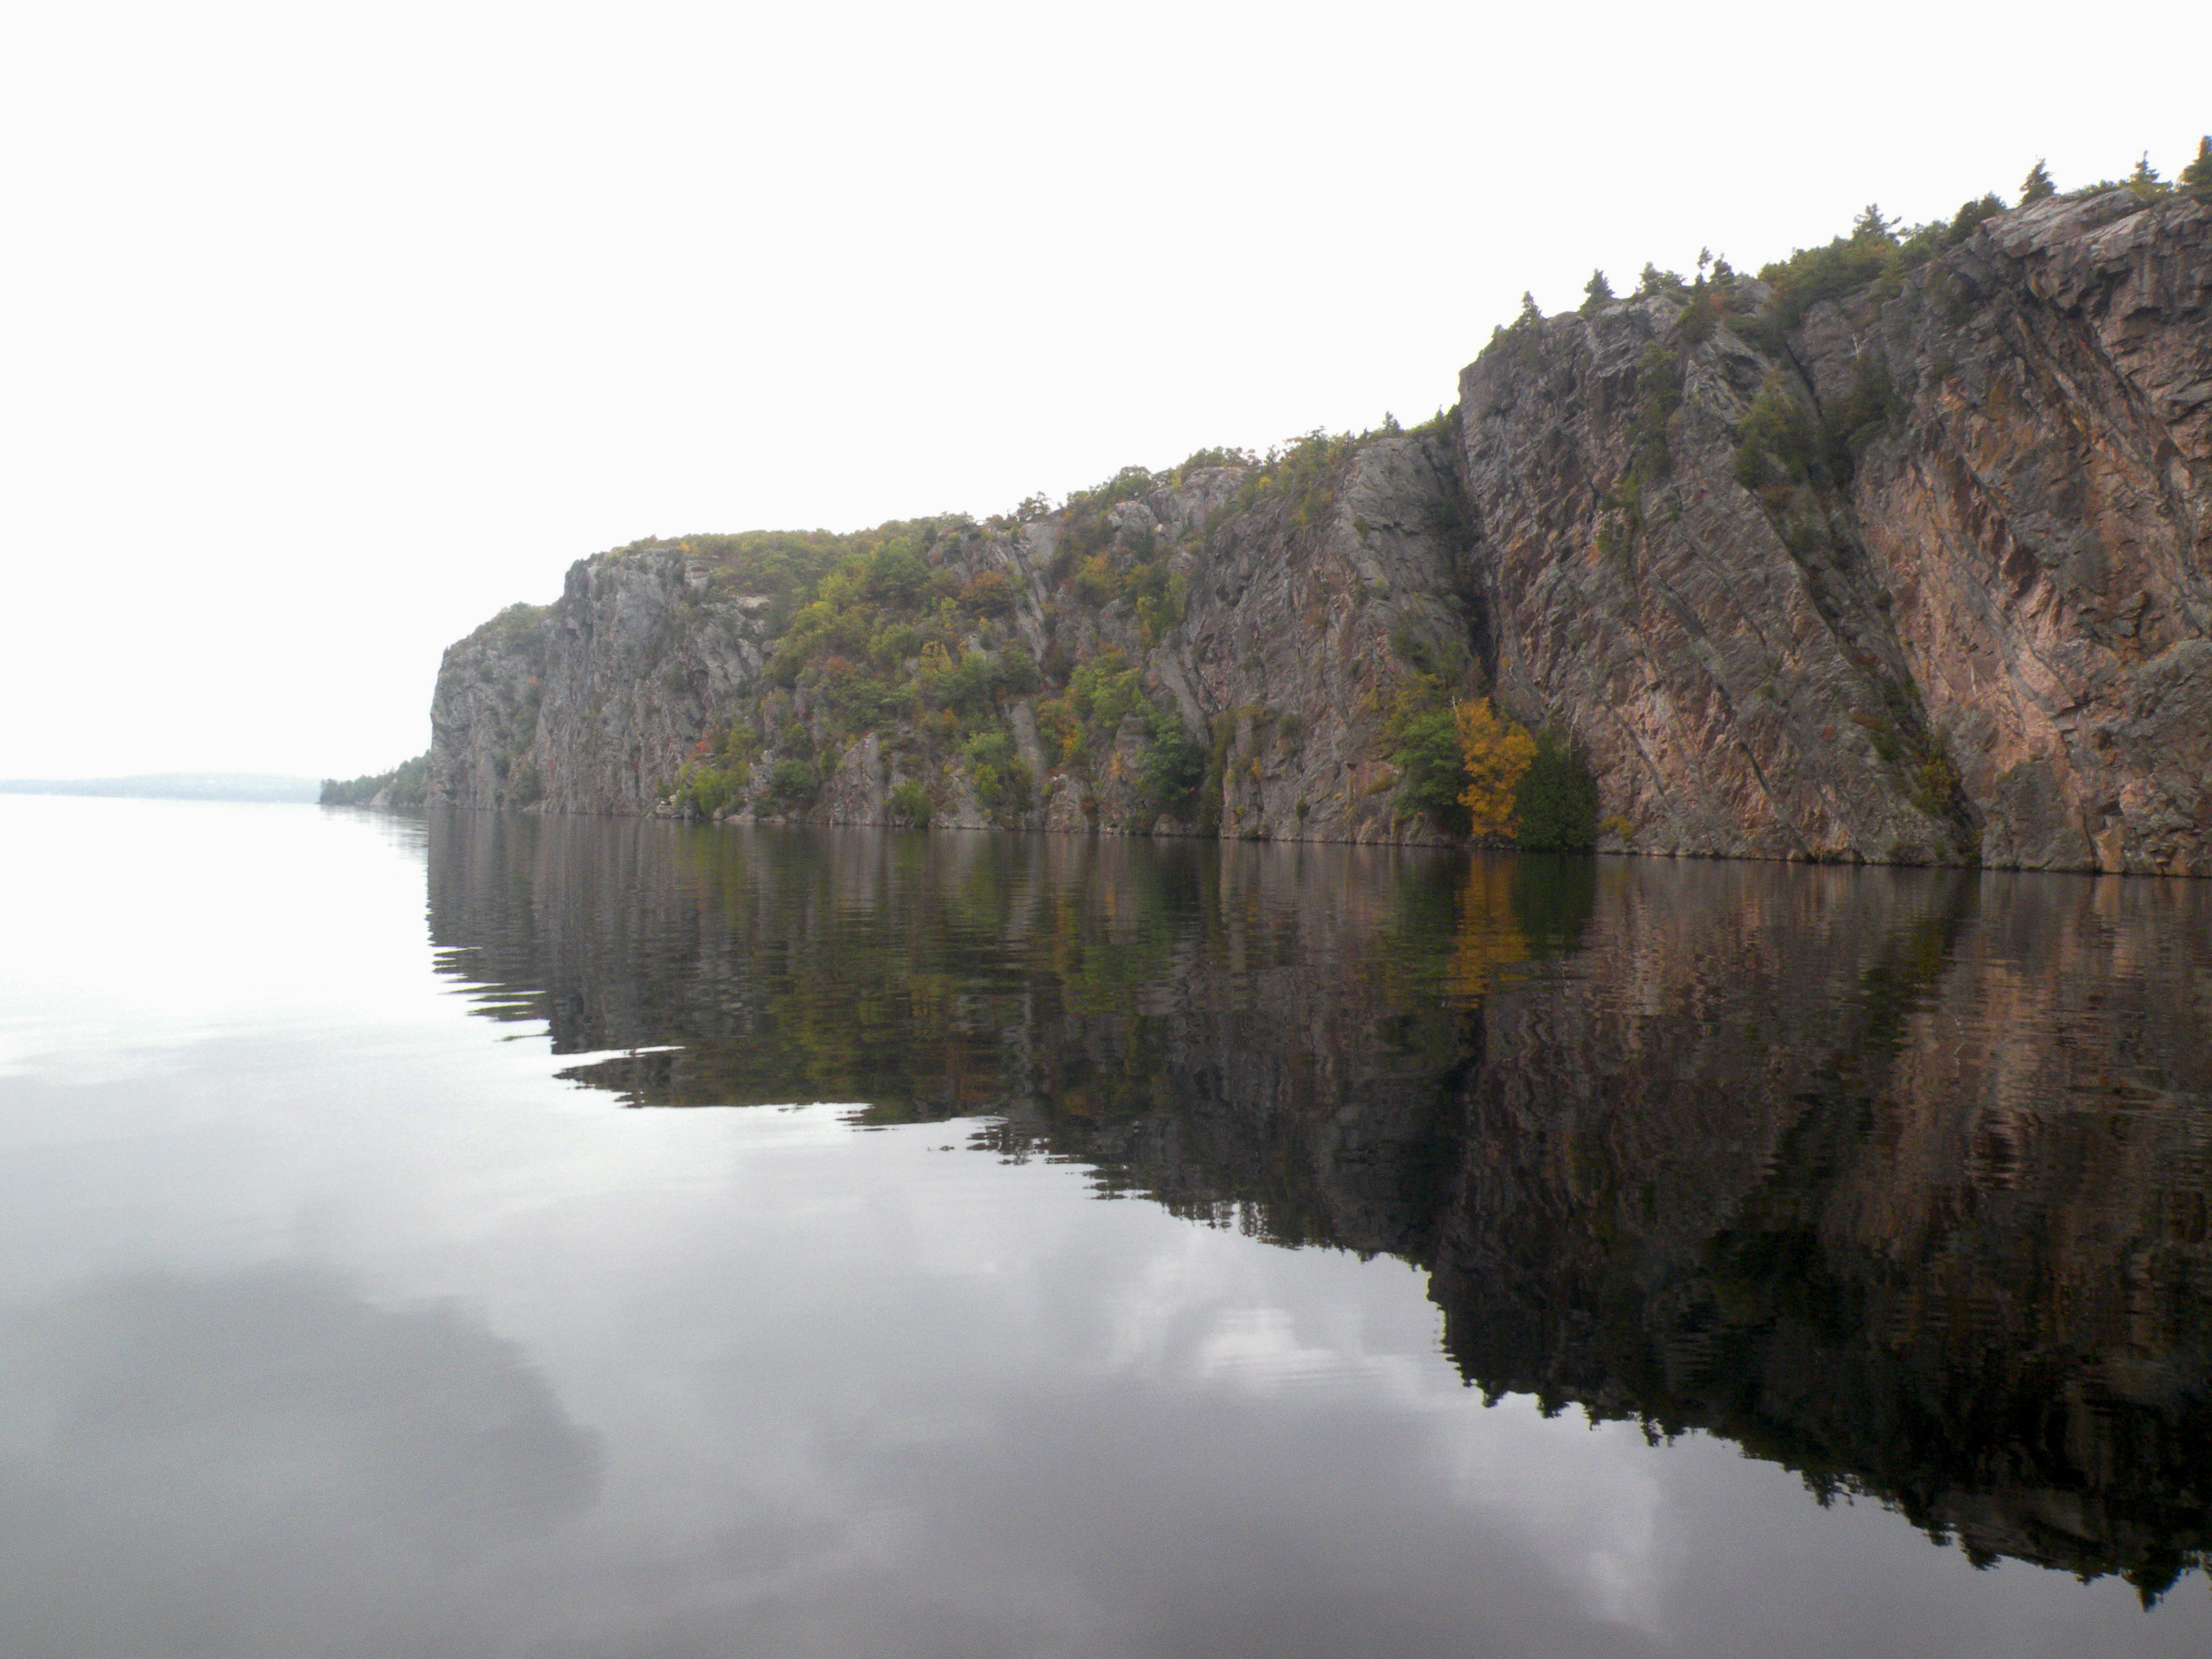 Photograph of the huge cliff at the Bon Echo site on Lake Mazinaw, Ontario. Rising up to 100 metres above the lake and extending for 1.5 kilometres, this place has more than 260 pictographs.